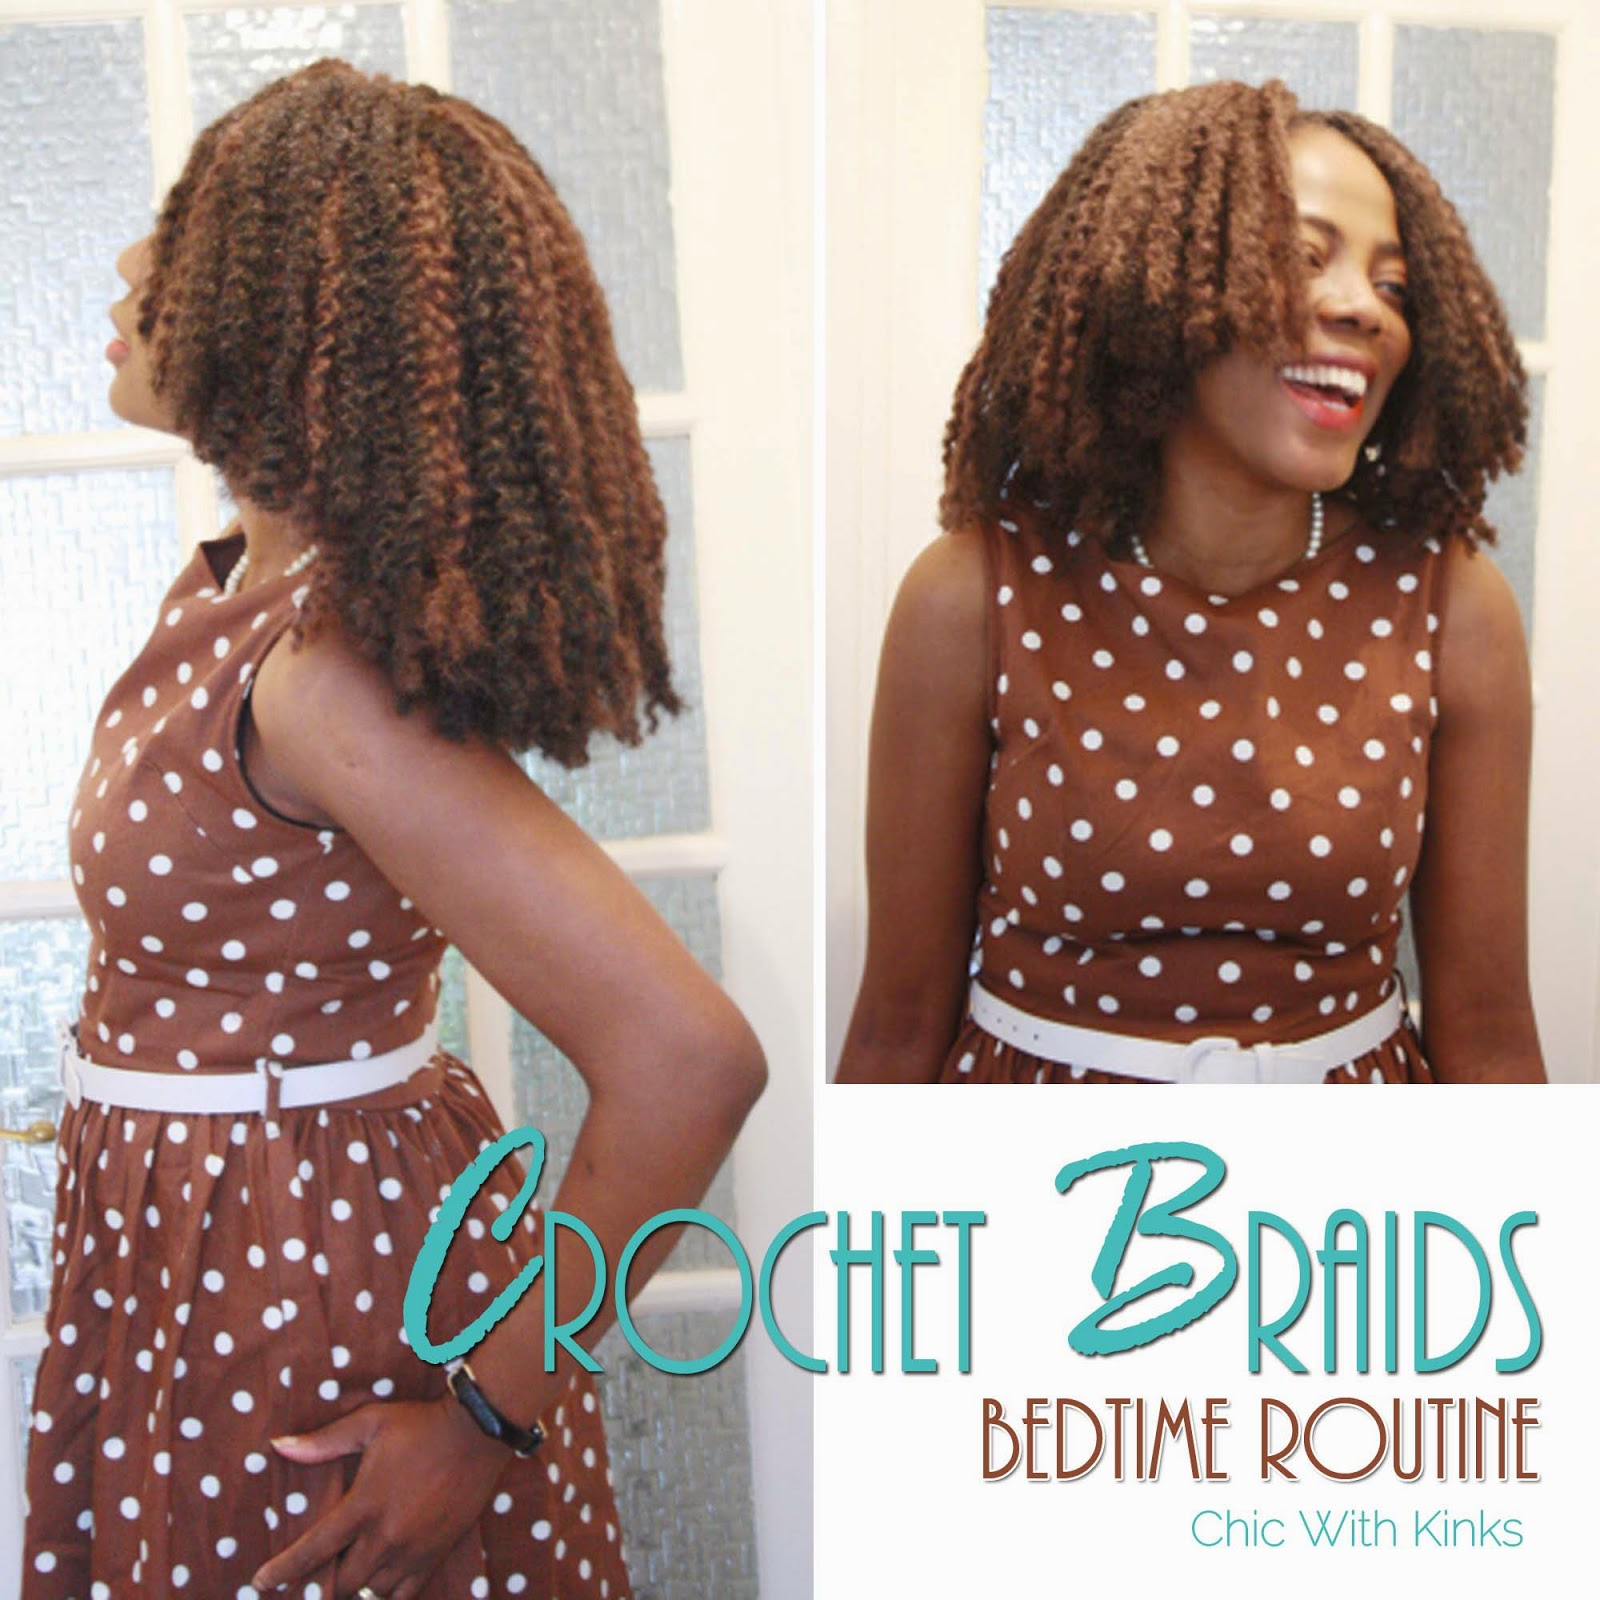 Crochet Hair Routine : crochet braids bed time routine chicwithkinks y all crochet braids